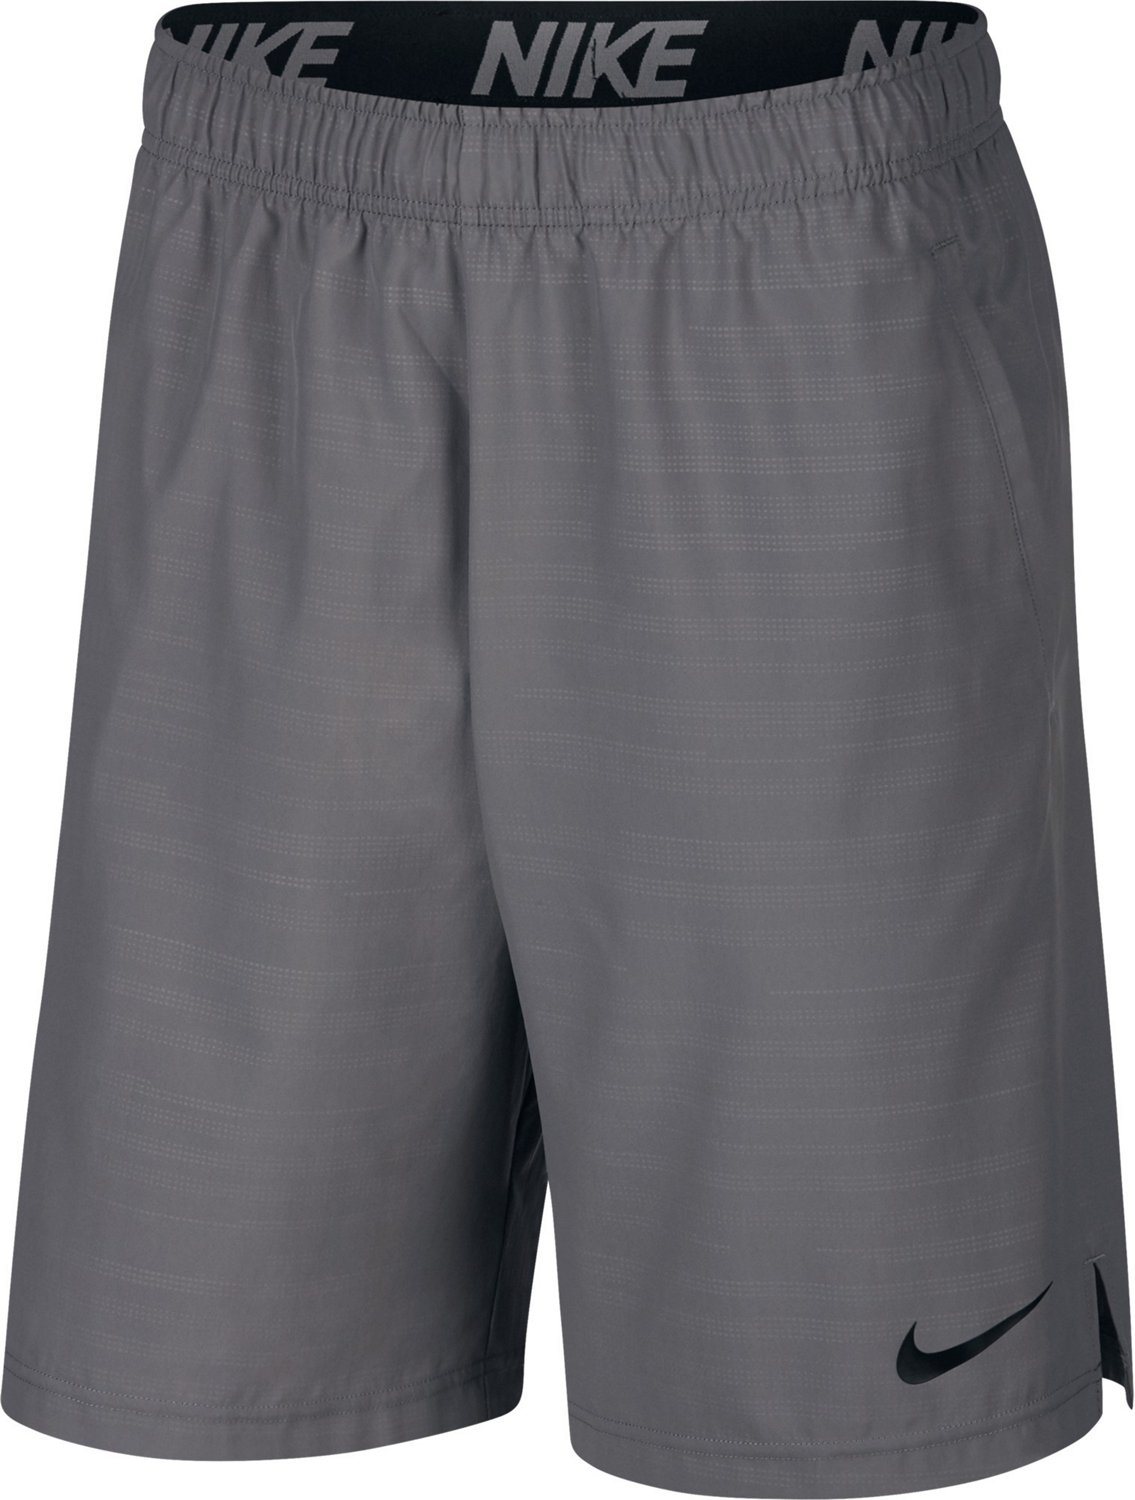 cb9f9a4e8c0c0 Nike Men s Dri-FIT Flex 2.0 Emboss Training Shorts 9 in